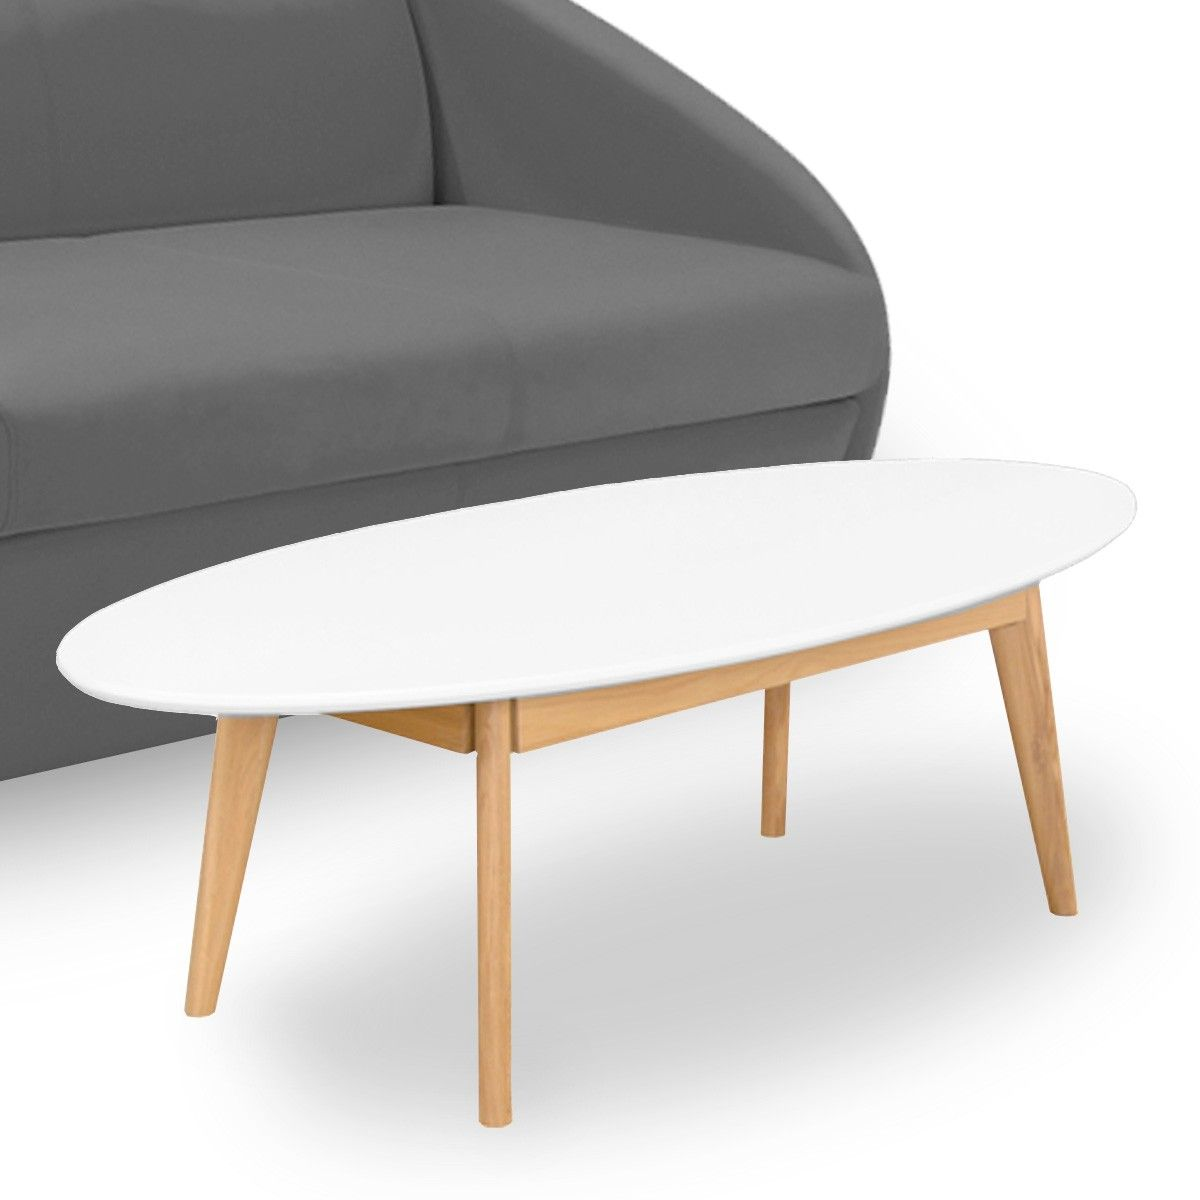 La table basse parfaite pour votre salon rise and shine - Table basse design ovale ...